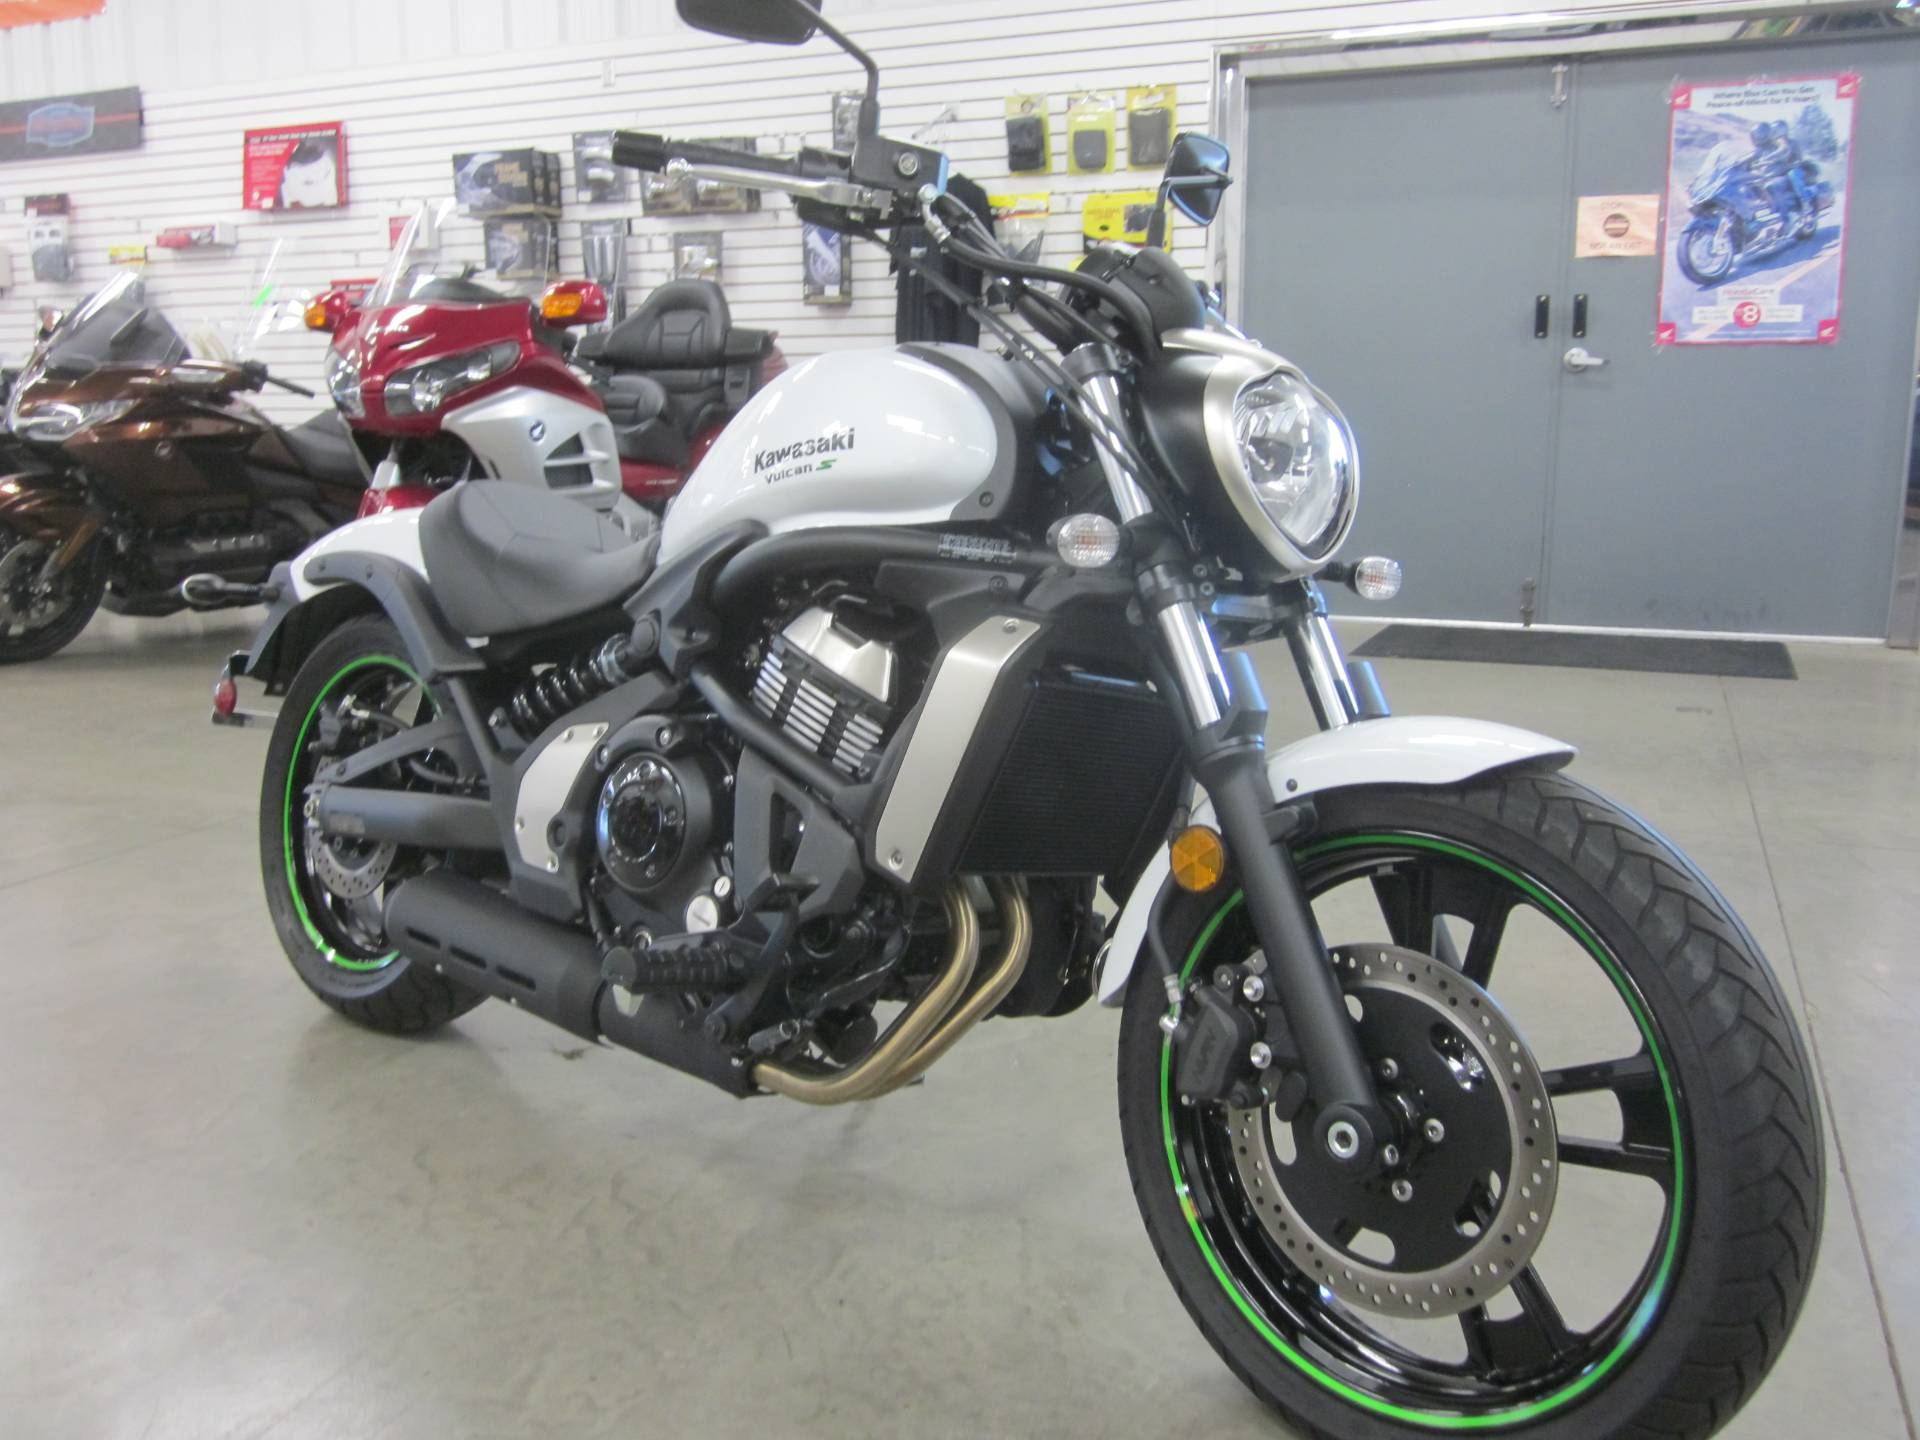 2015 Kawasaki Vulcan S in Lima, Ohio - Photo 1